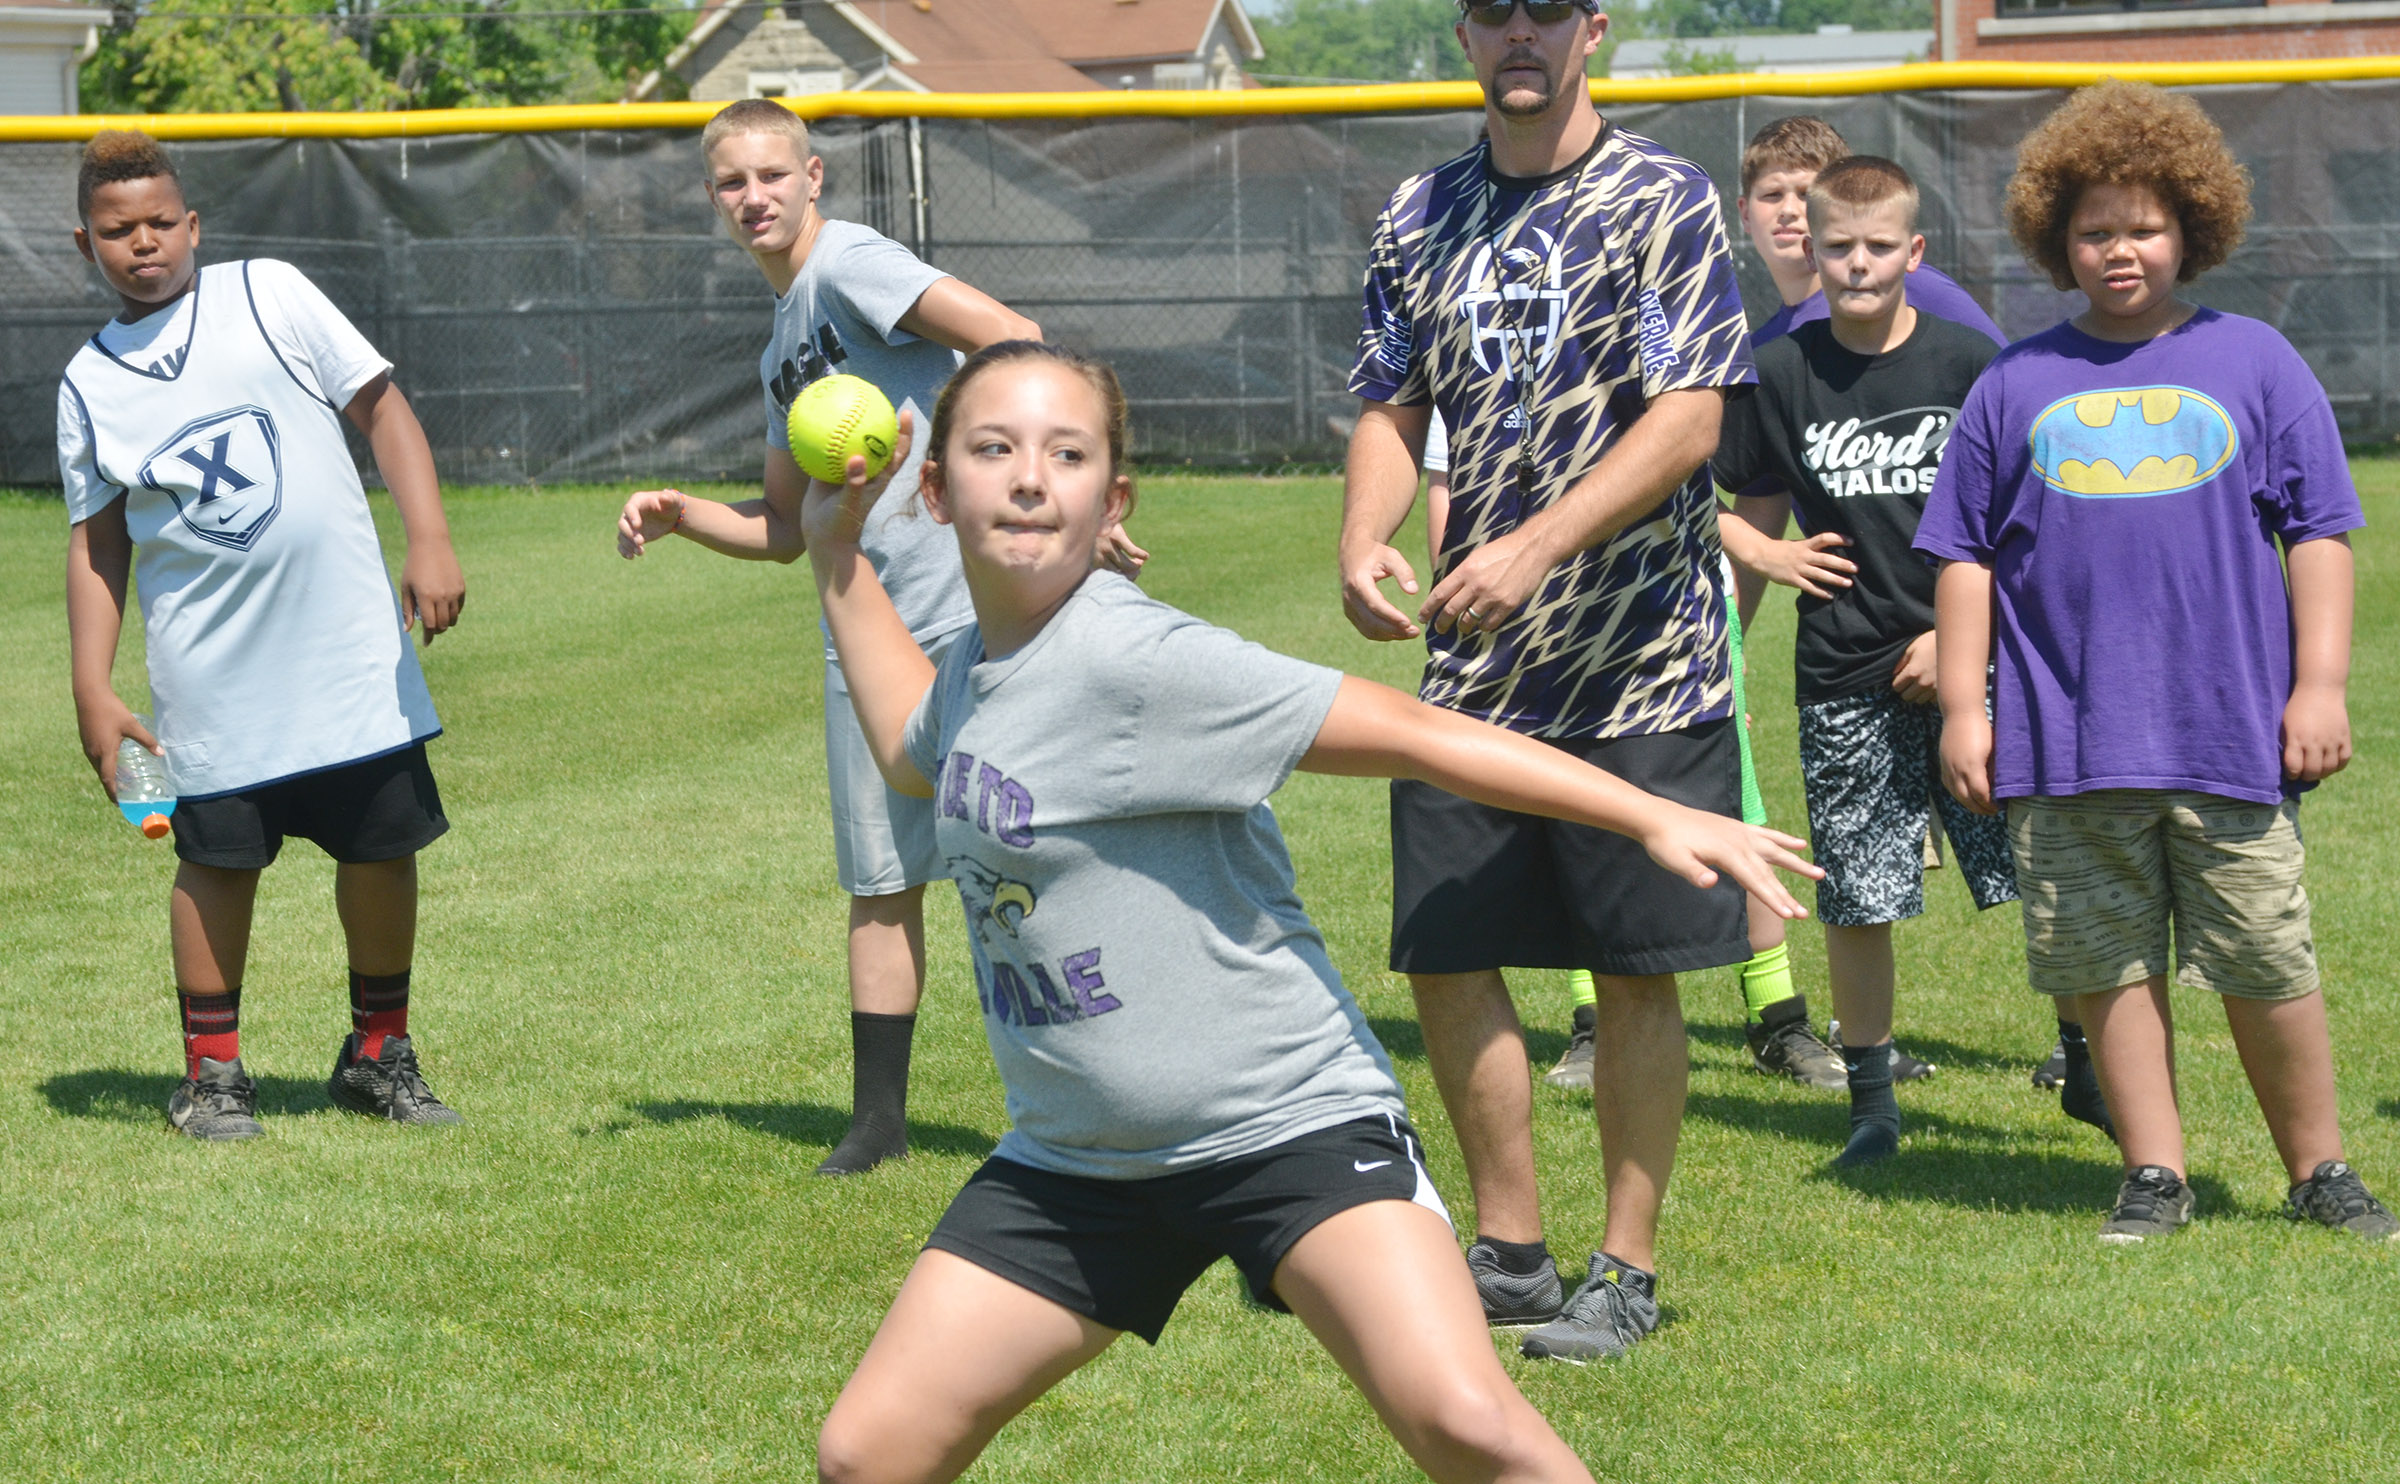 Male competitors watch as sixth-grader Briana Davis competes in the softball throw.